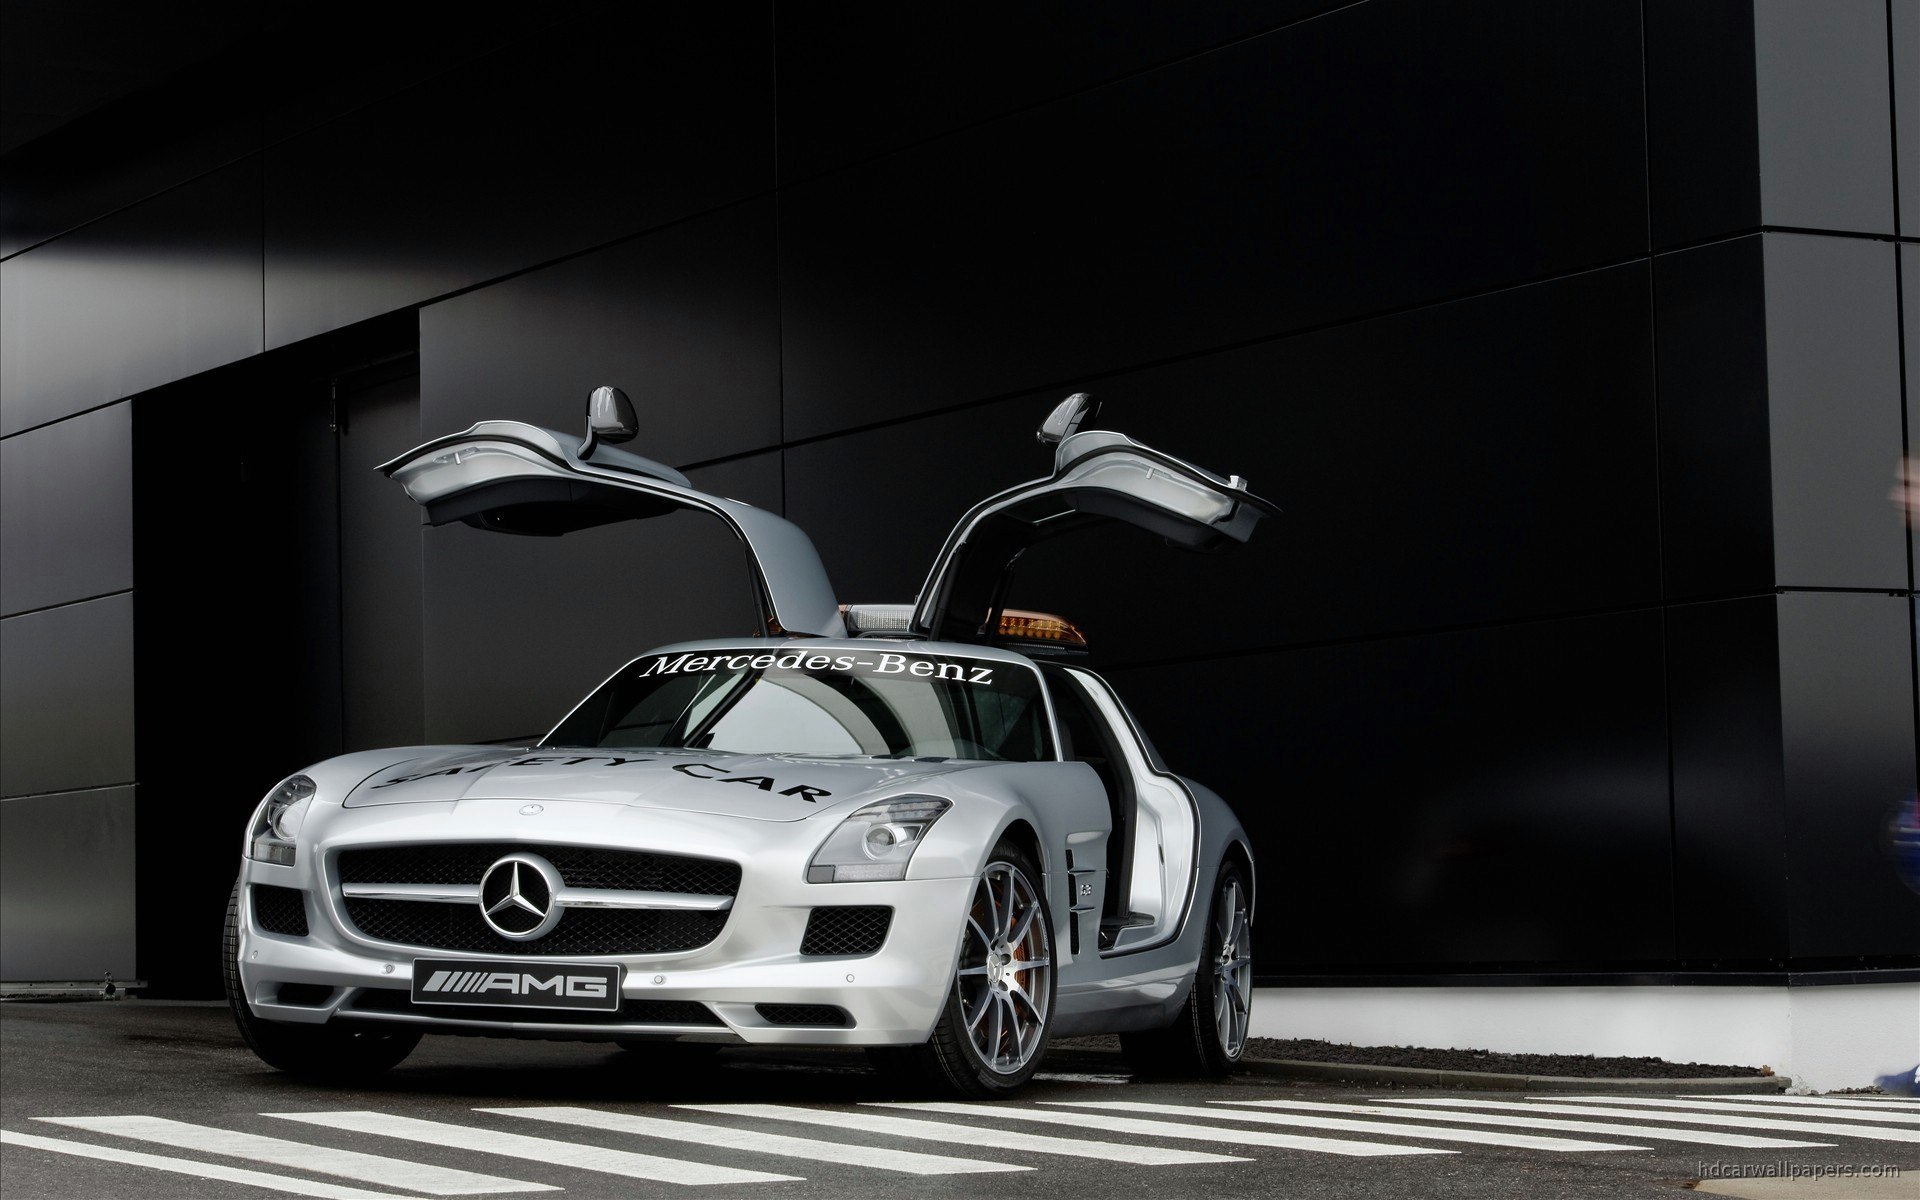 2010 Mercedes Benz Sls Amg F1 Safety Car Wallpaper Hd